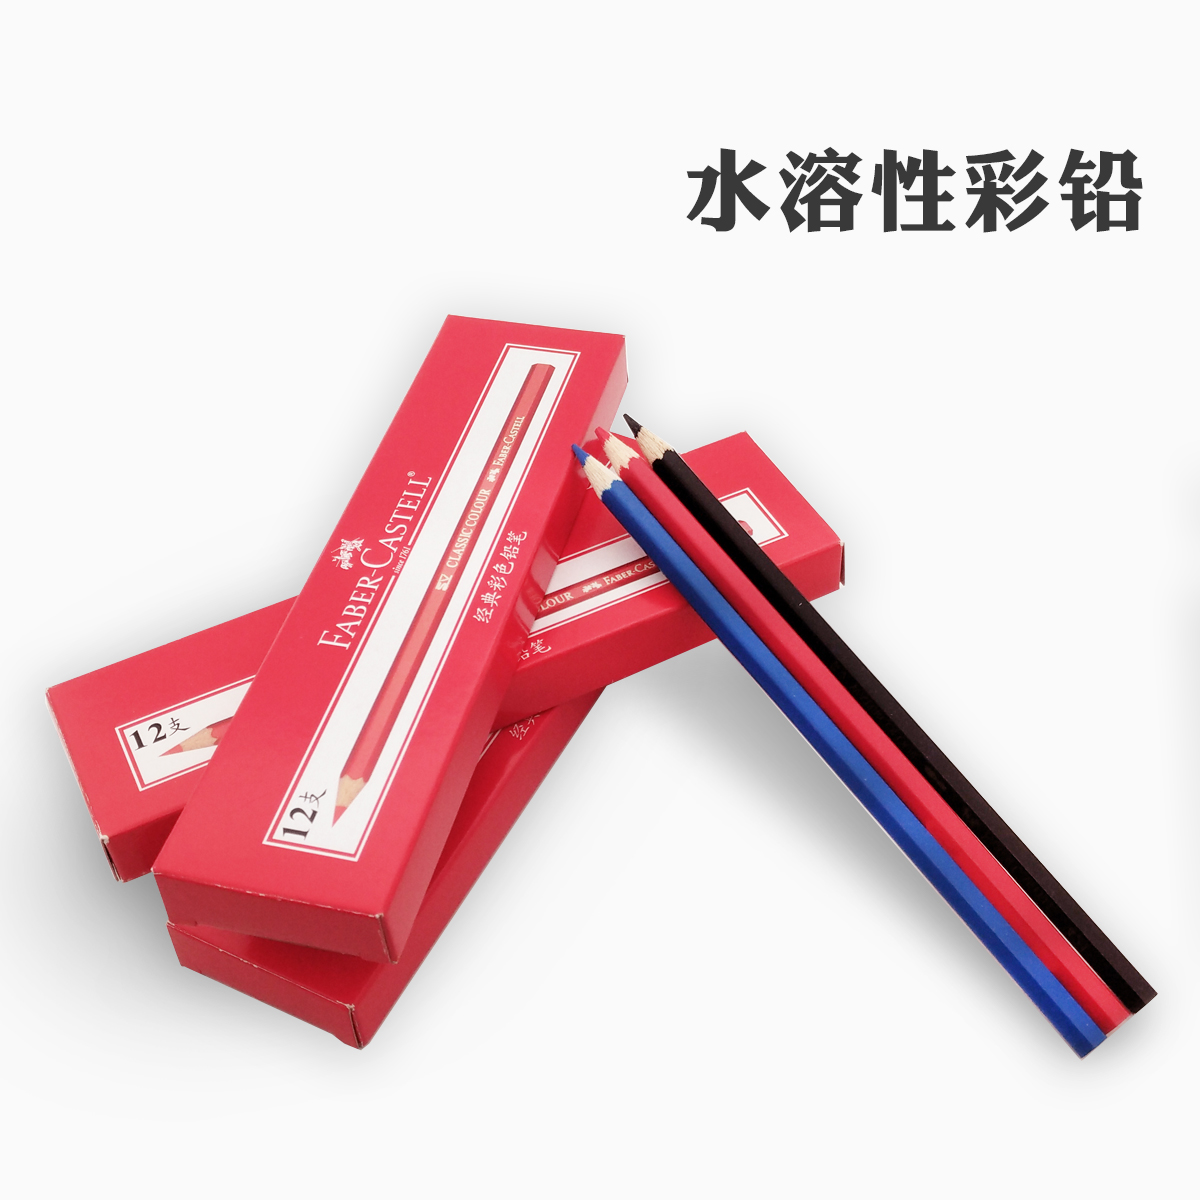 Germany faber ka single water soluble colored pencils single drawing color lead battle sketch pencil red blue black